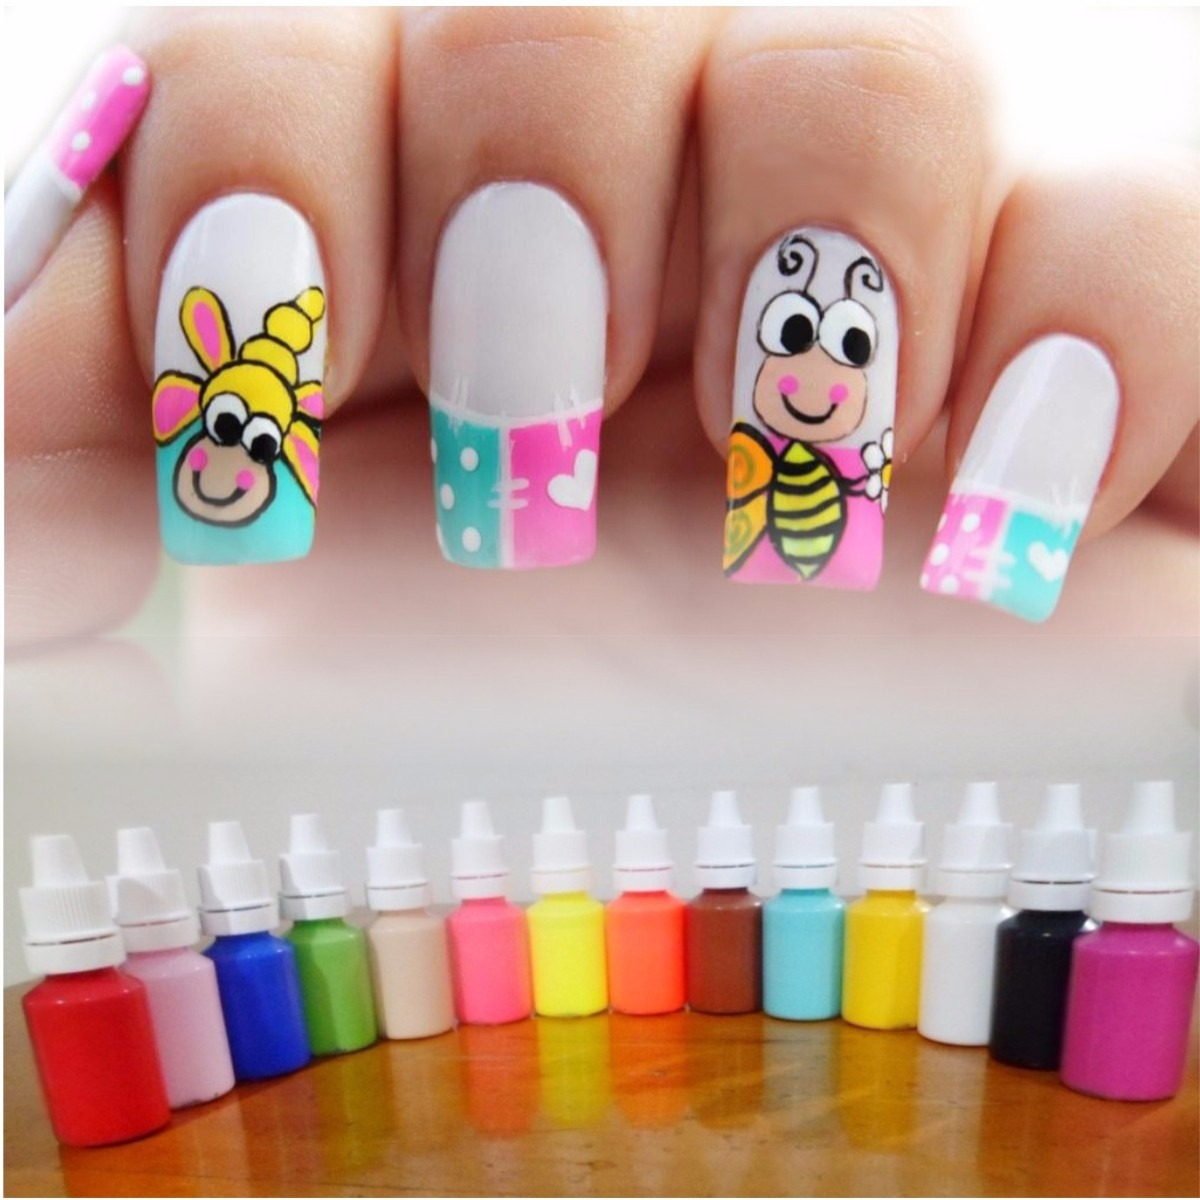 Kit de 12 pinturas acr licas nail art decoraci n u as for Decoracion e